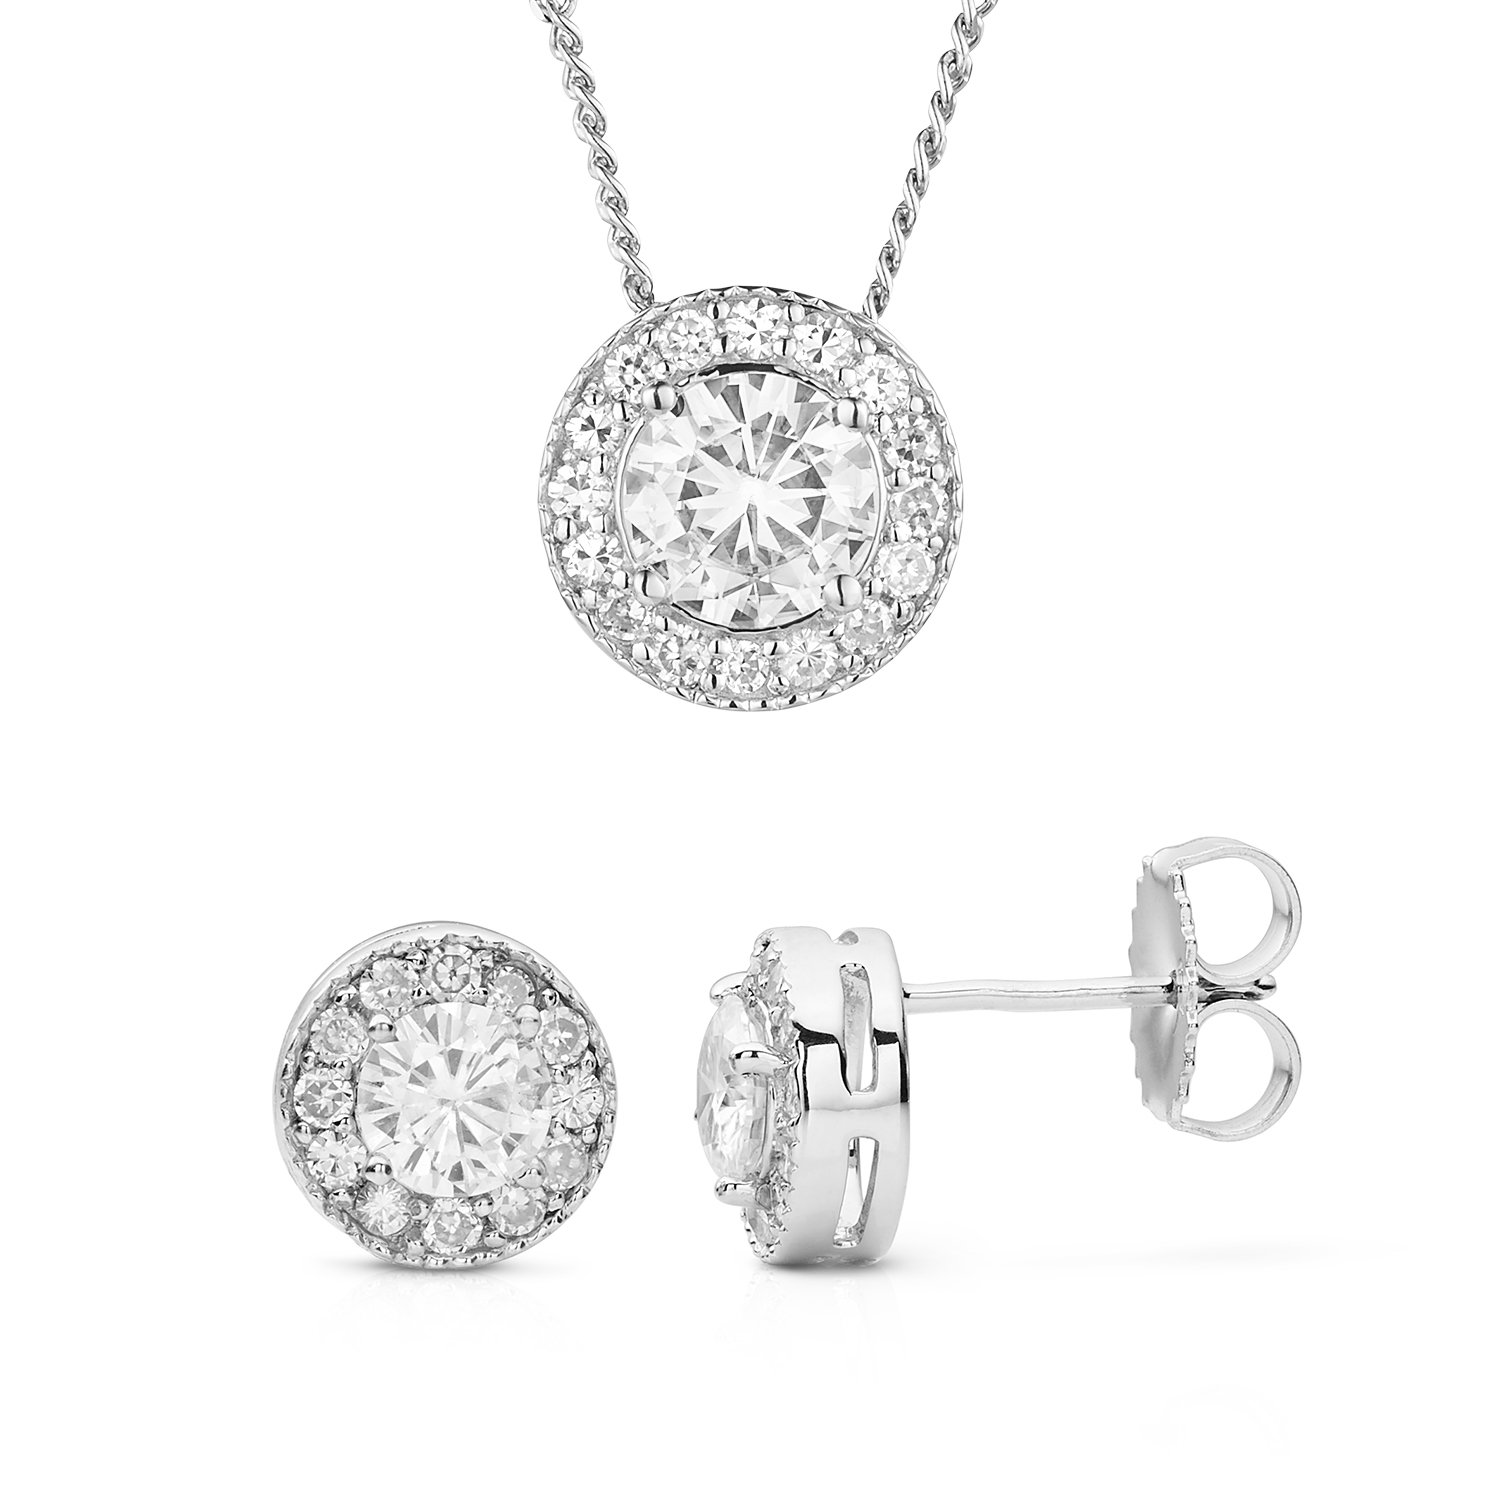 Forever Classic Round Cut Halo Moissanite Earrings and Pendant Necklace Set By Charles & Colvard